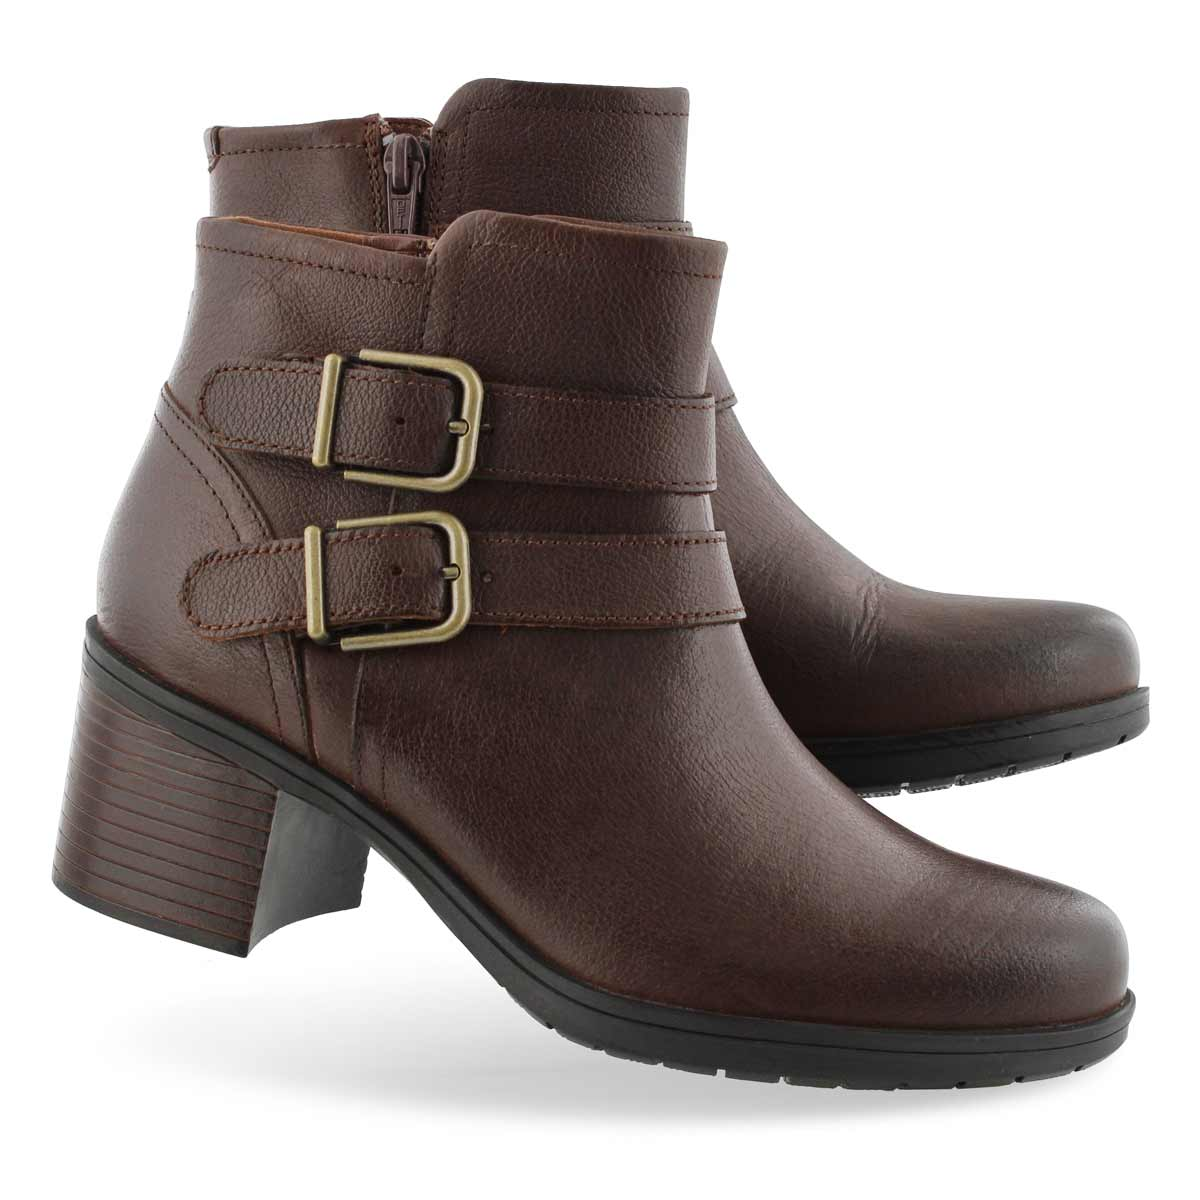 Lds Hollis Pearl mahogany ankle boot